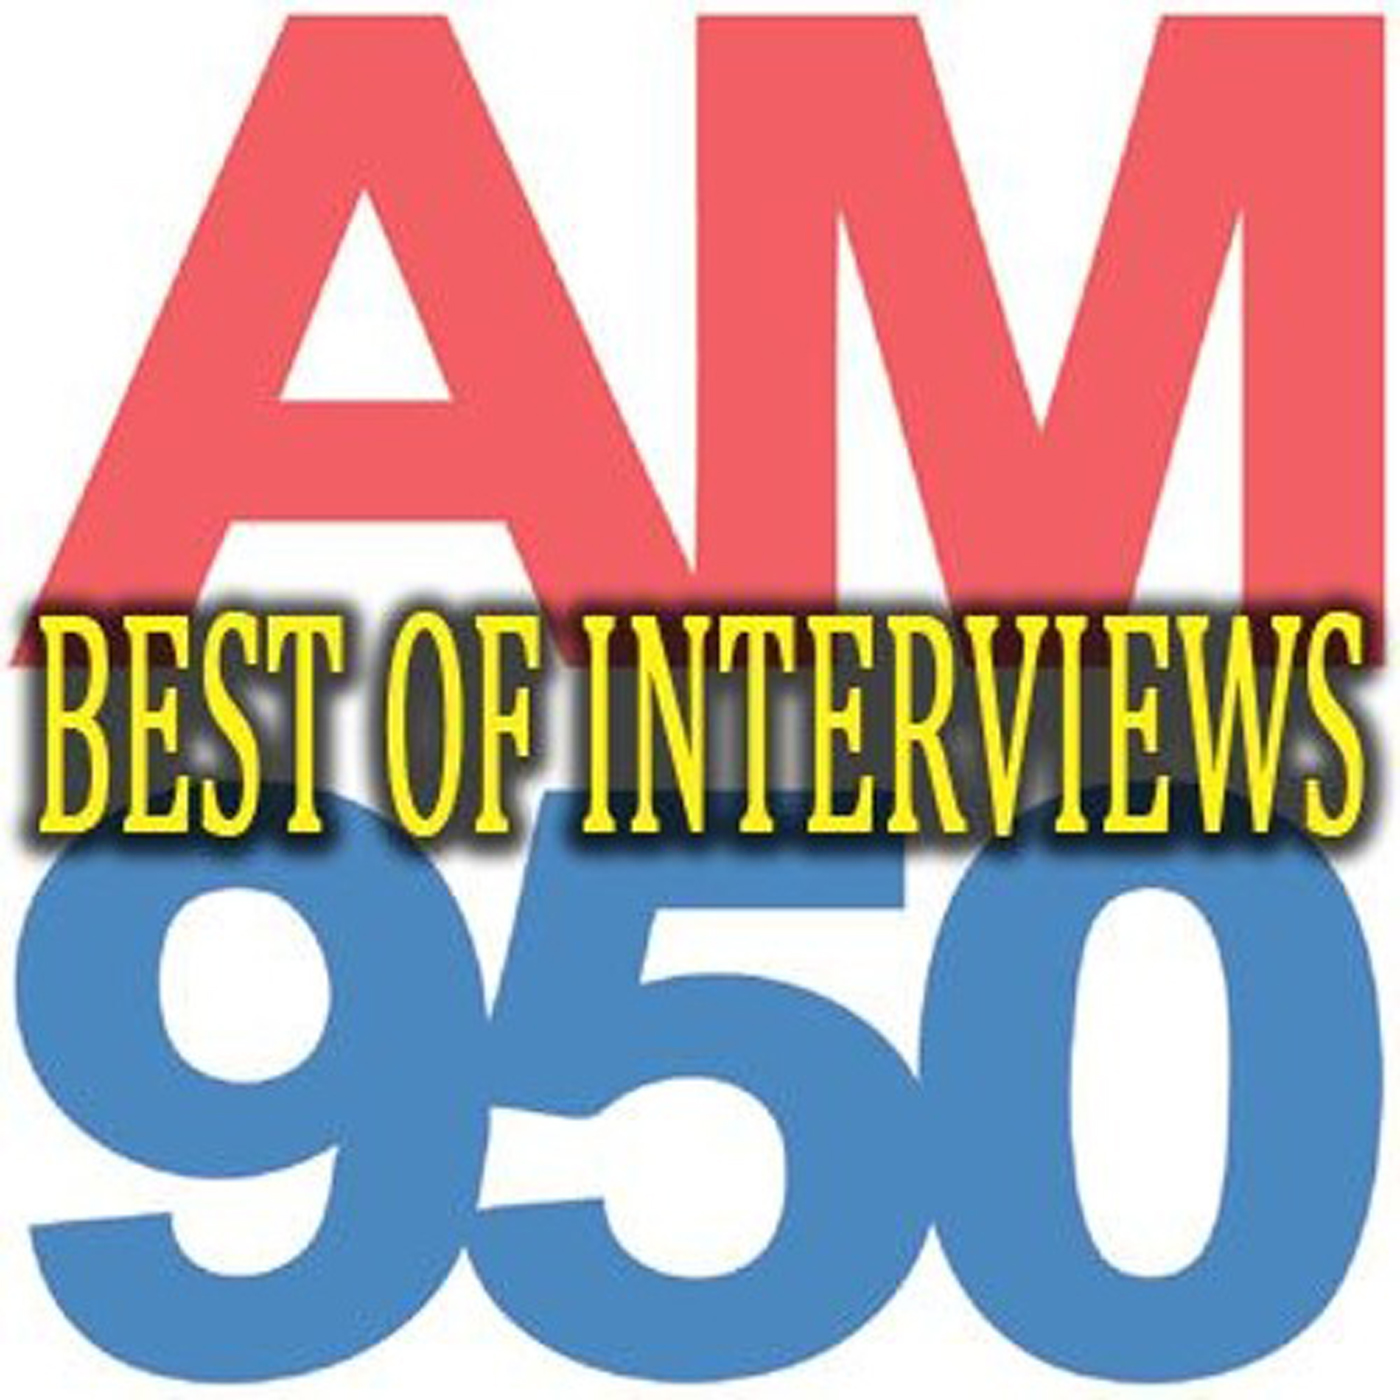 Best of Interviews - AM950 The Progressive Voice of Minnesota